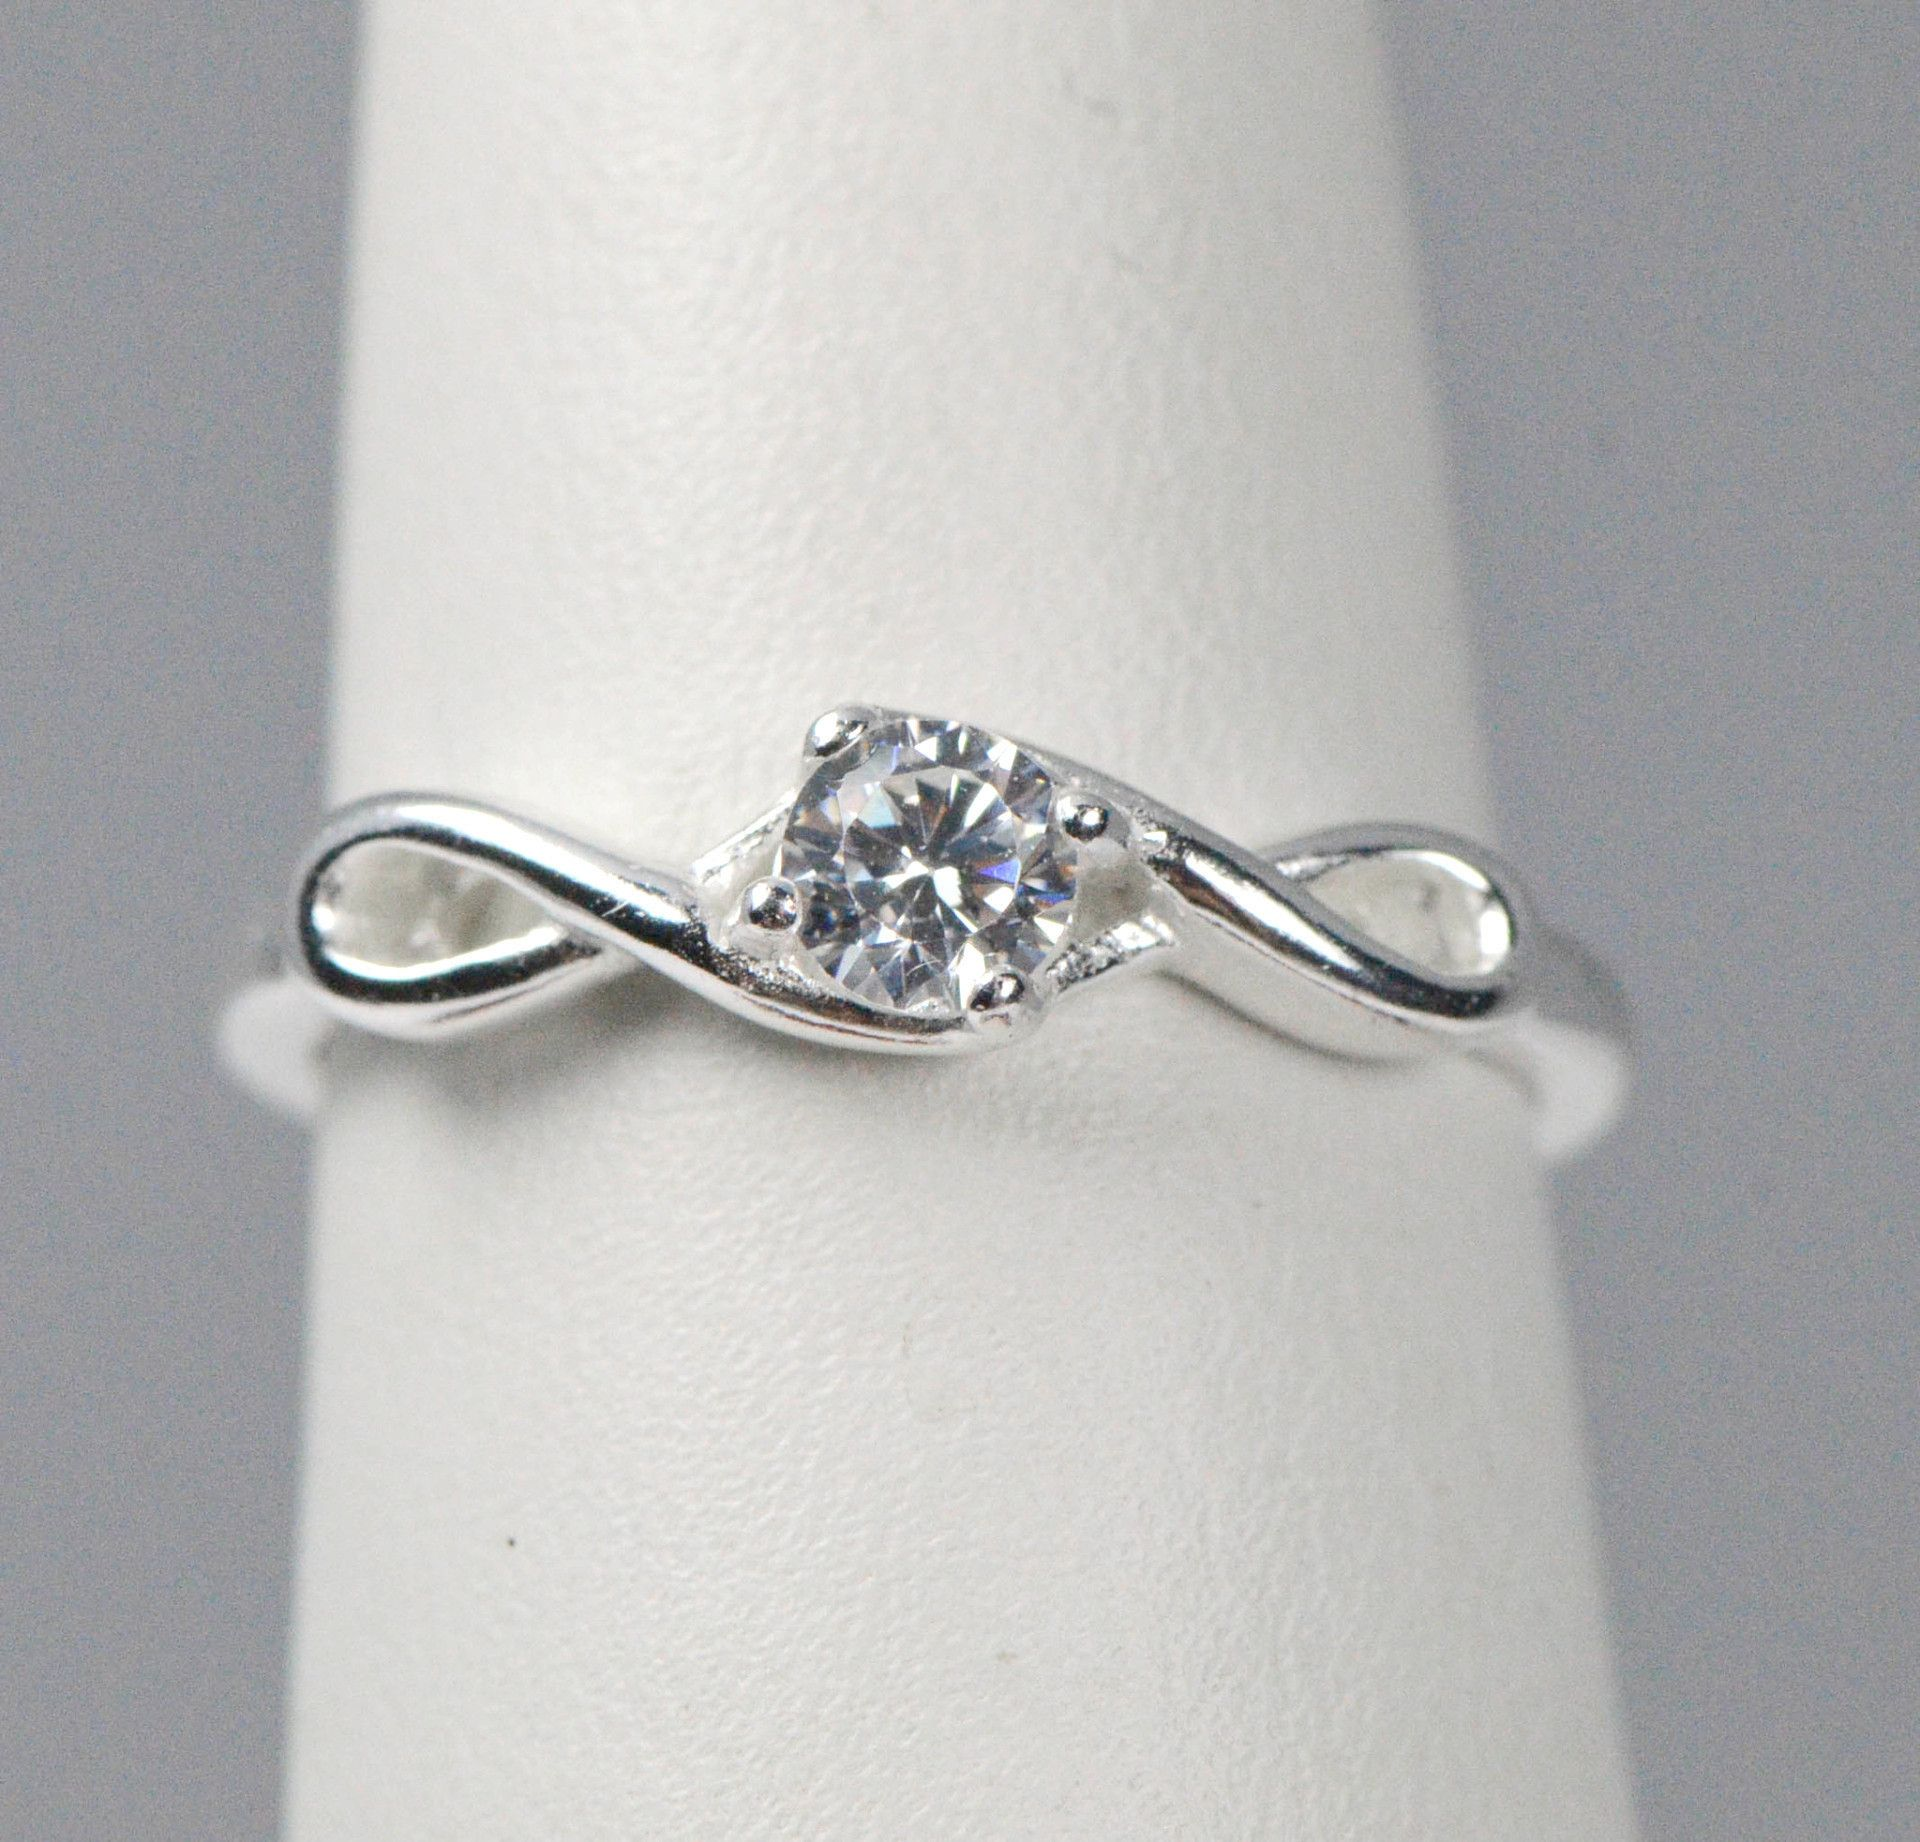 il promise male en ring zoom listing knot sterling silver man infinity rings fullxfull